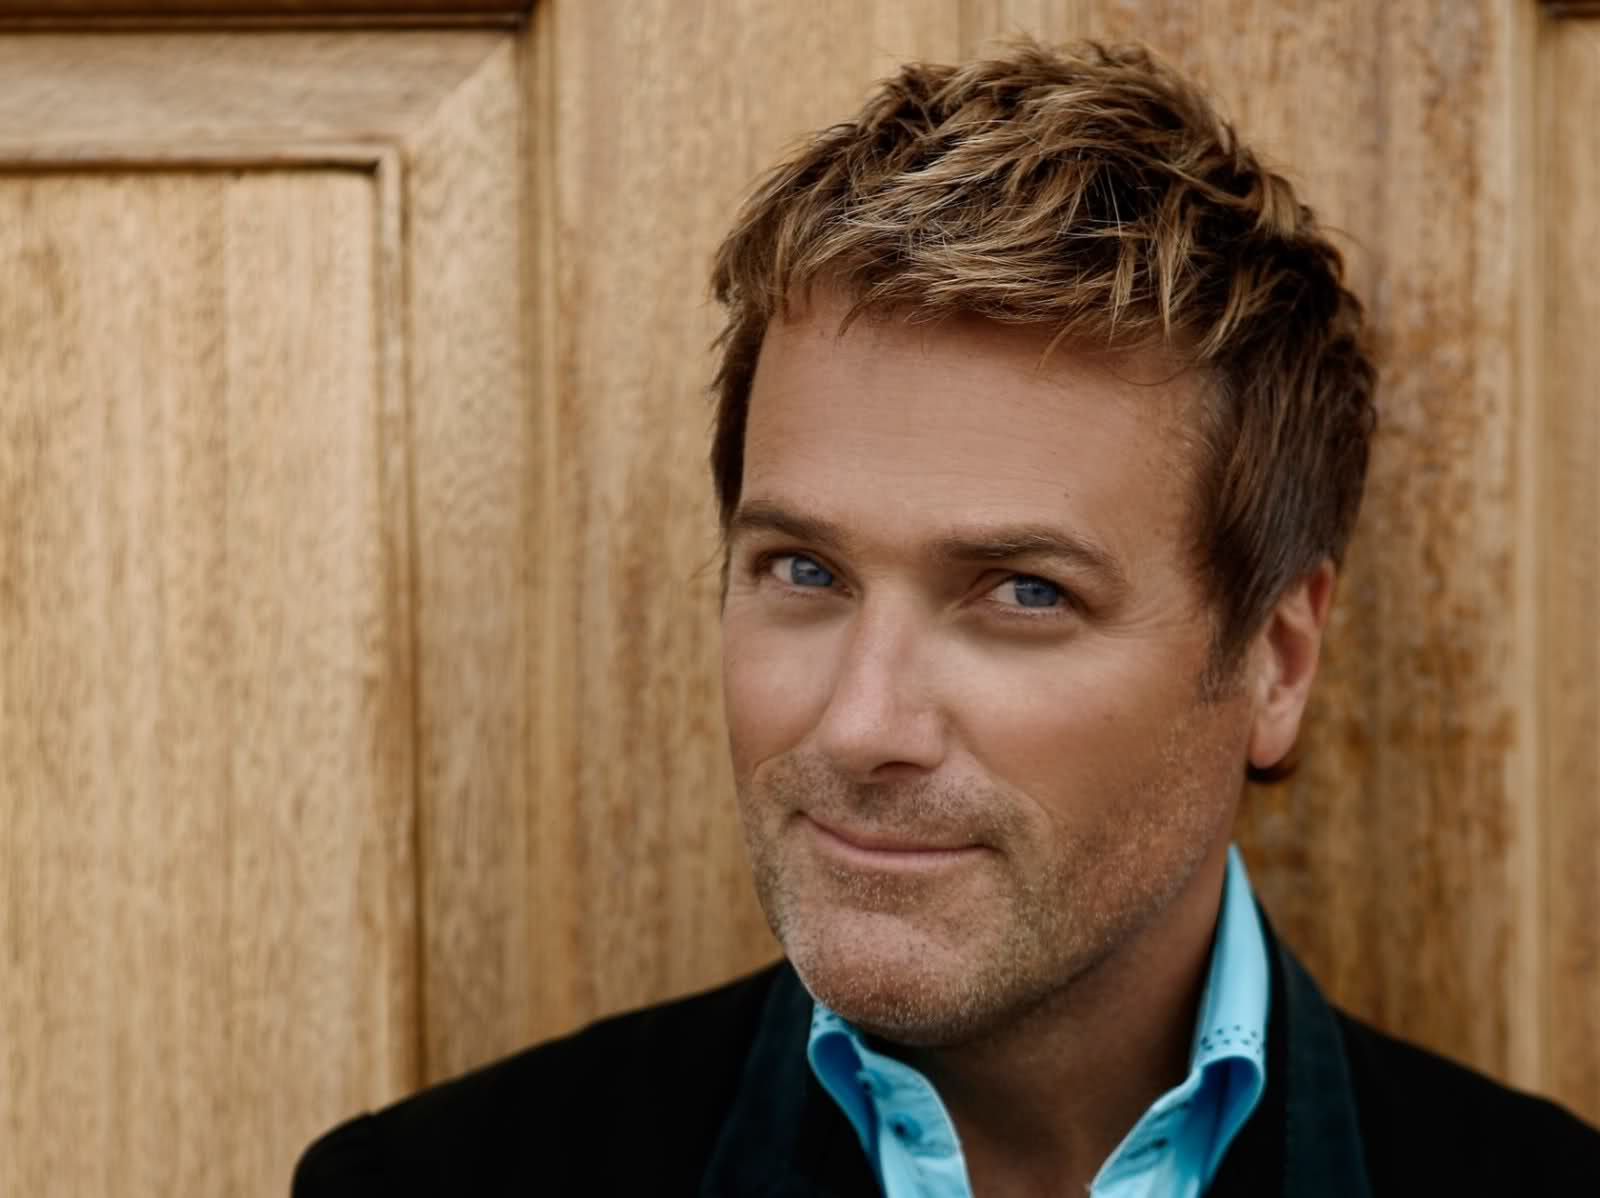 Sensational Michael W Smith All In The Serve Weekly Playlist Tbn Play Easy Diy Christmas Decorations Tissureus